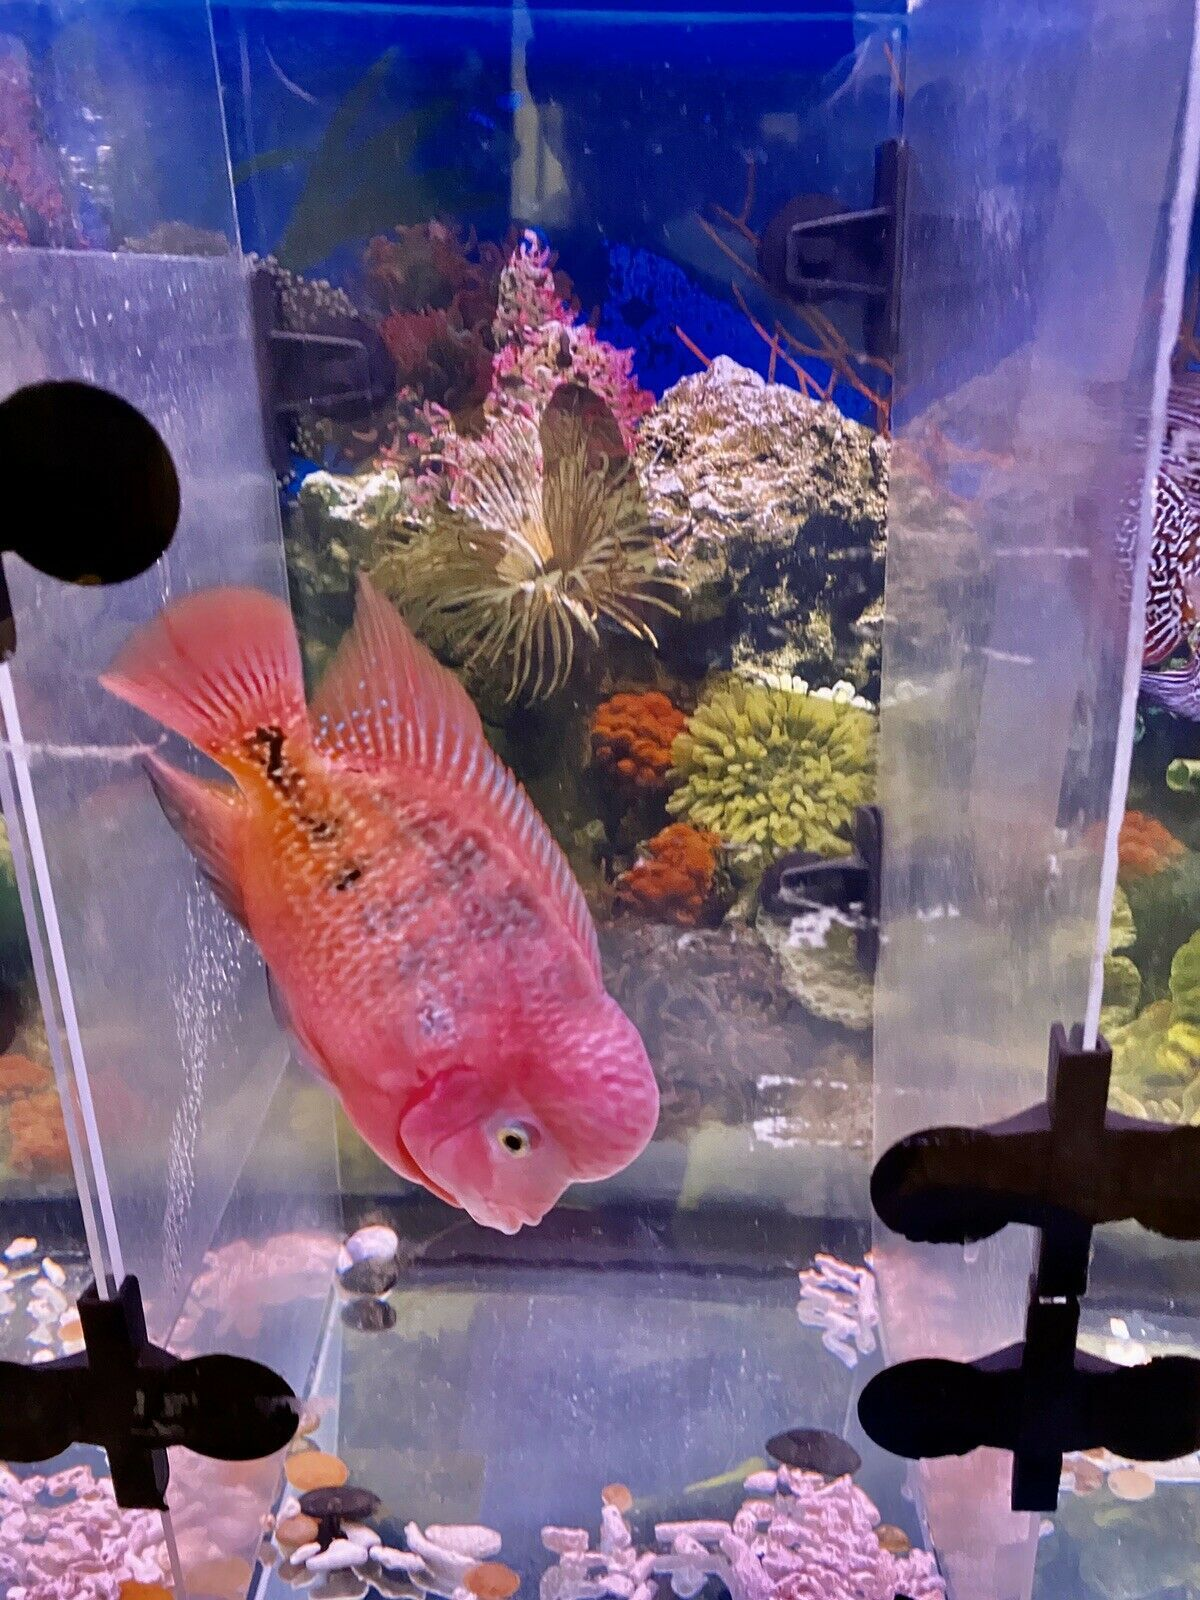 RARE.. SUPER RED SYNS KING KAMFA flowerhorn in 2020 Fish